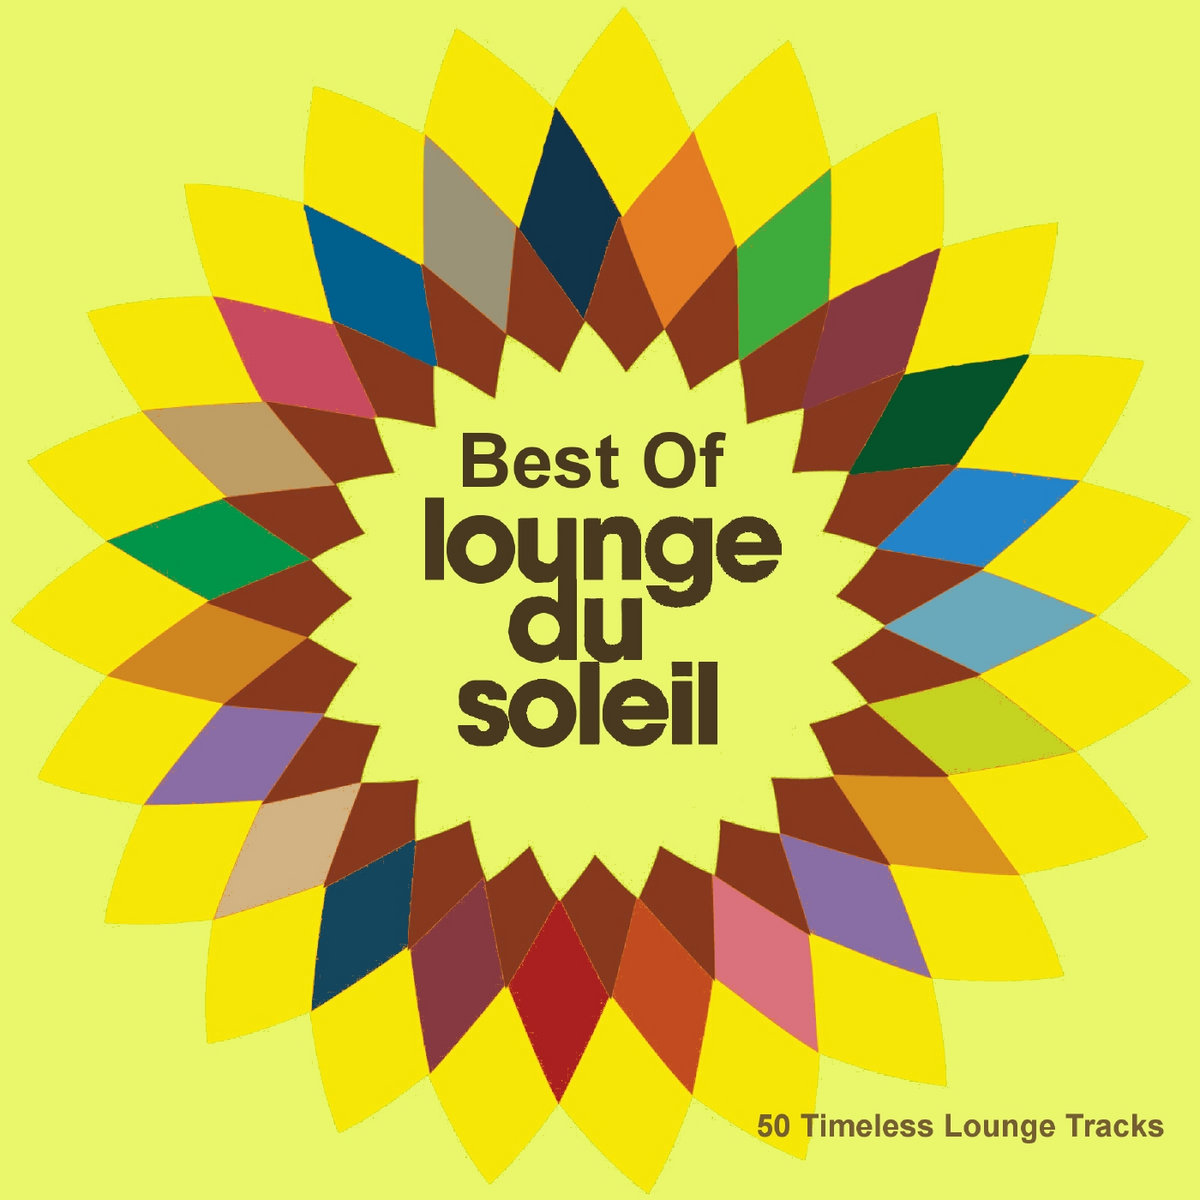 Best Of Lounge Du Soleil (50 Timeless Lounge Tracks